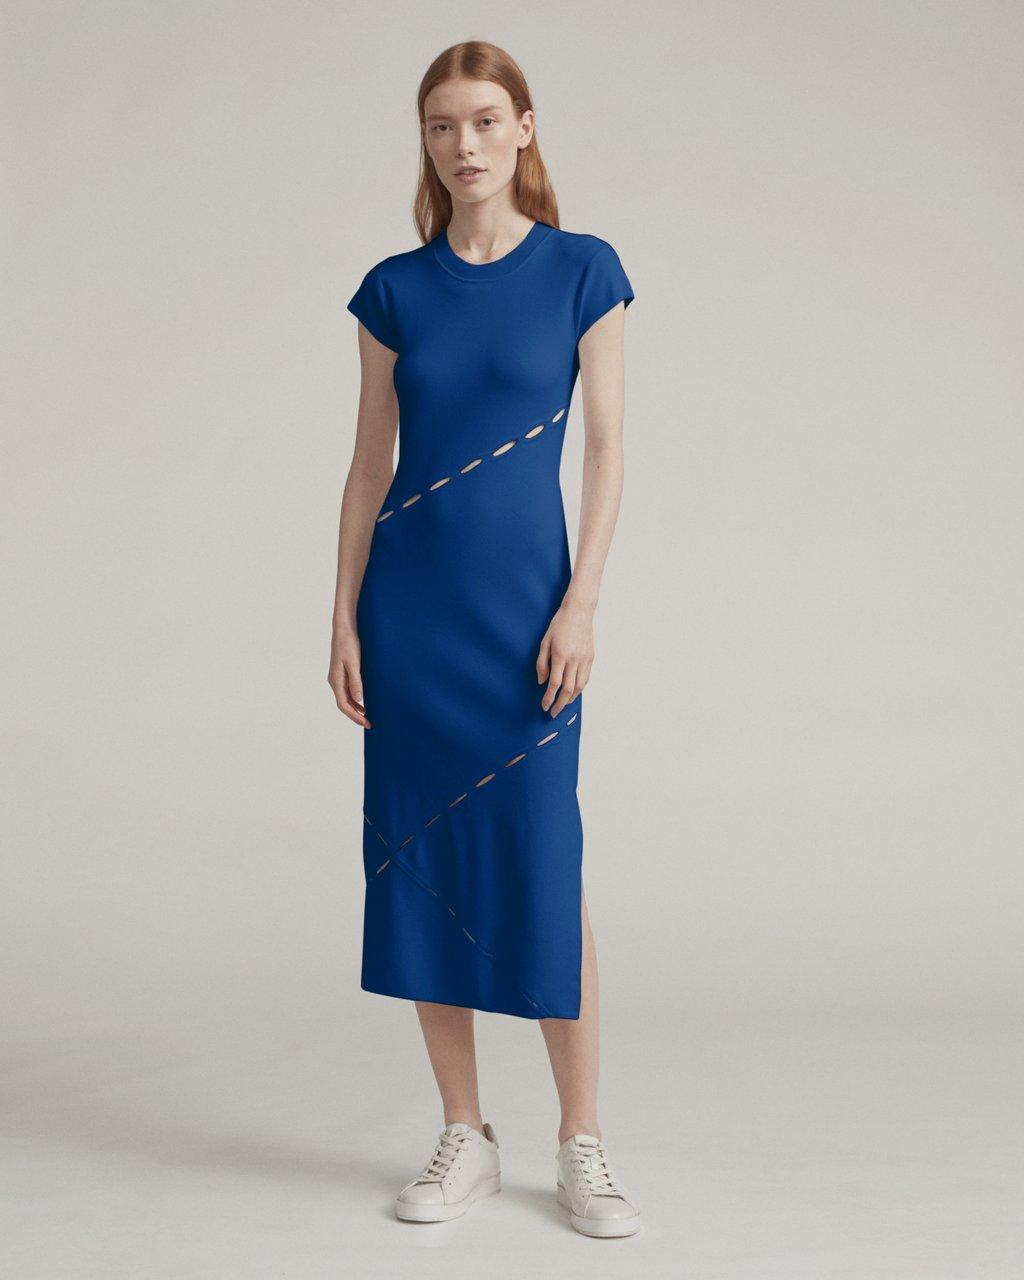 Eden Viscose Dress